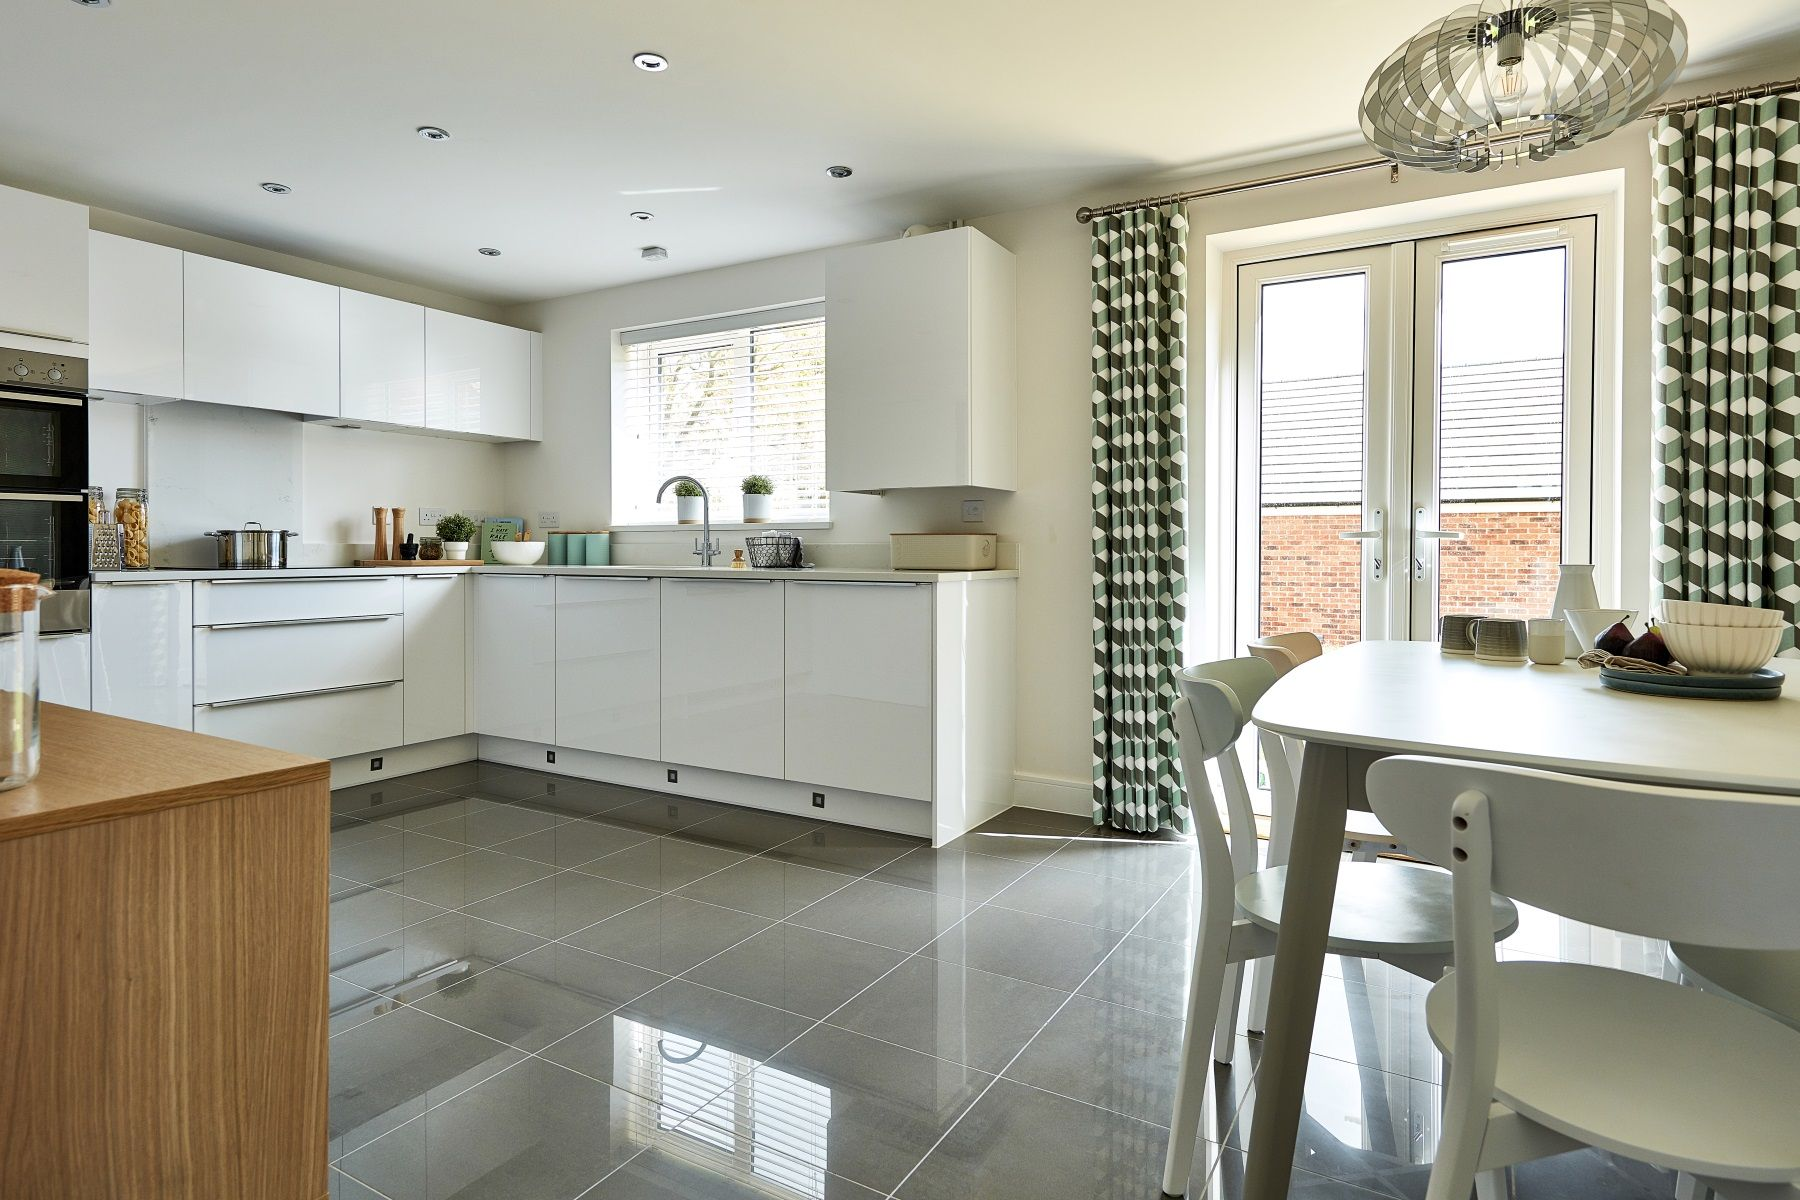 TW Exeter - Copleston Heights - Midford example kitchen 2